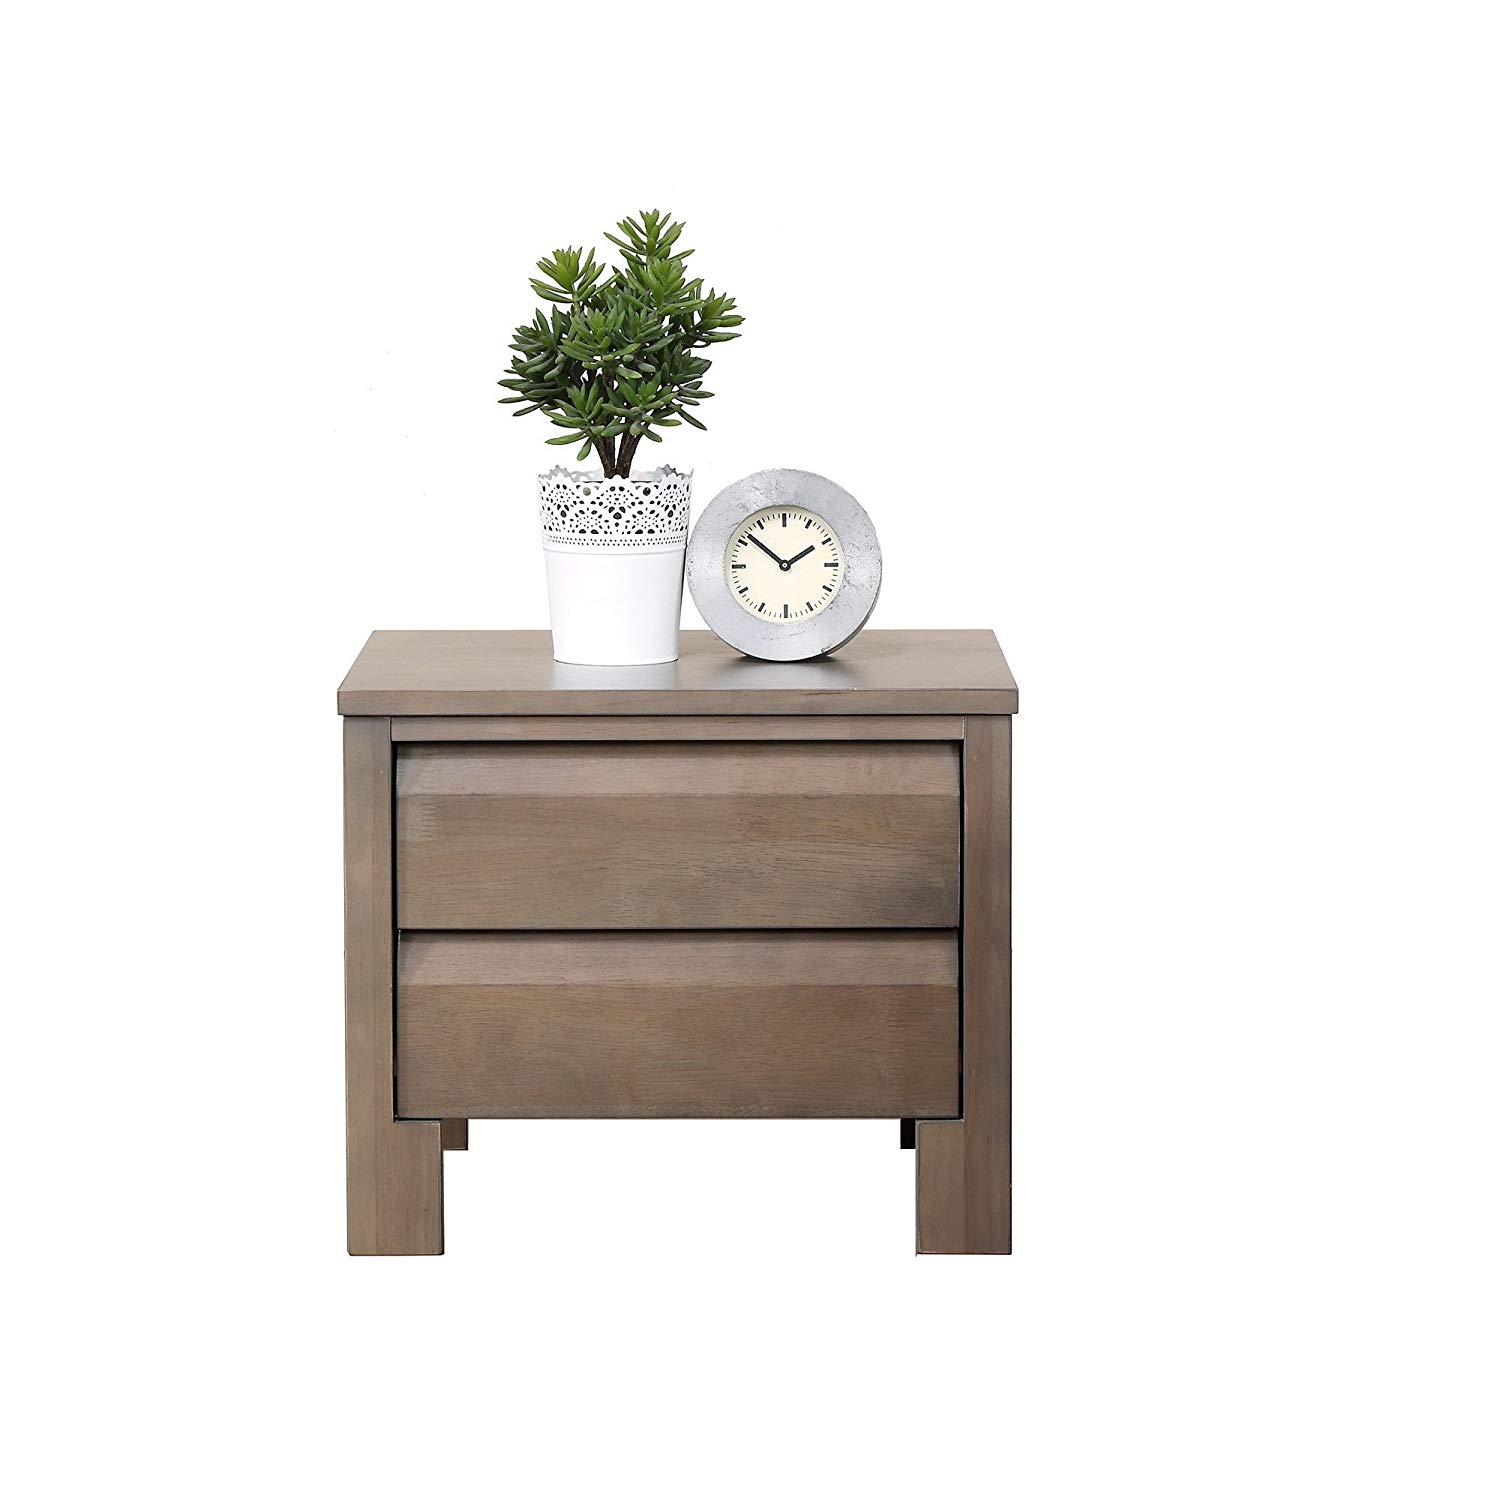 modhaus living modern wood accent end table night stand with drawer charcoal grey finish includes pen kitchen dining expandable furniture console shoe storage round screw legs